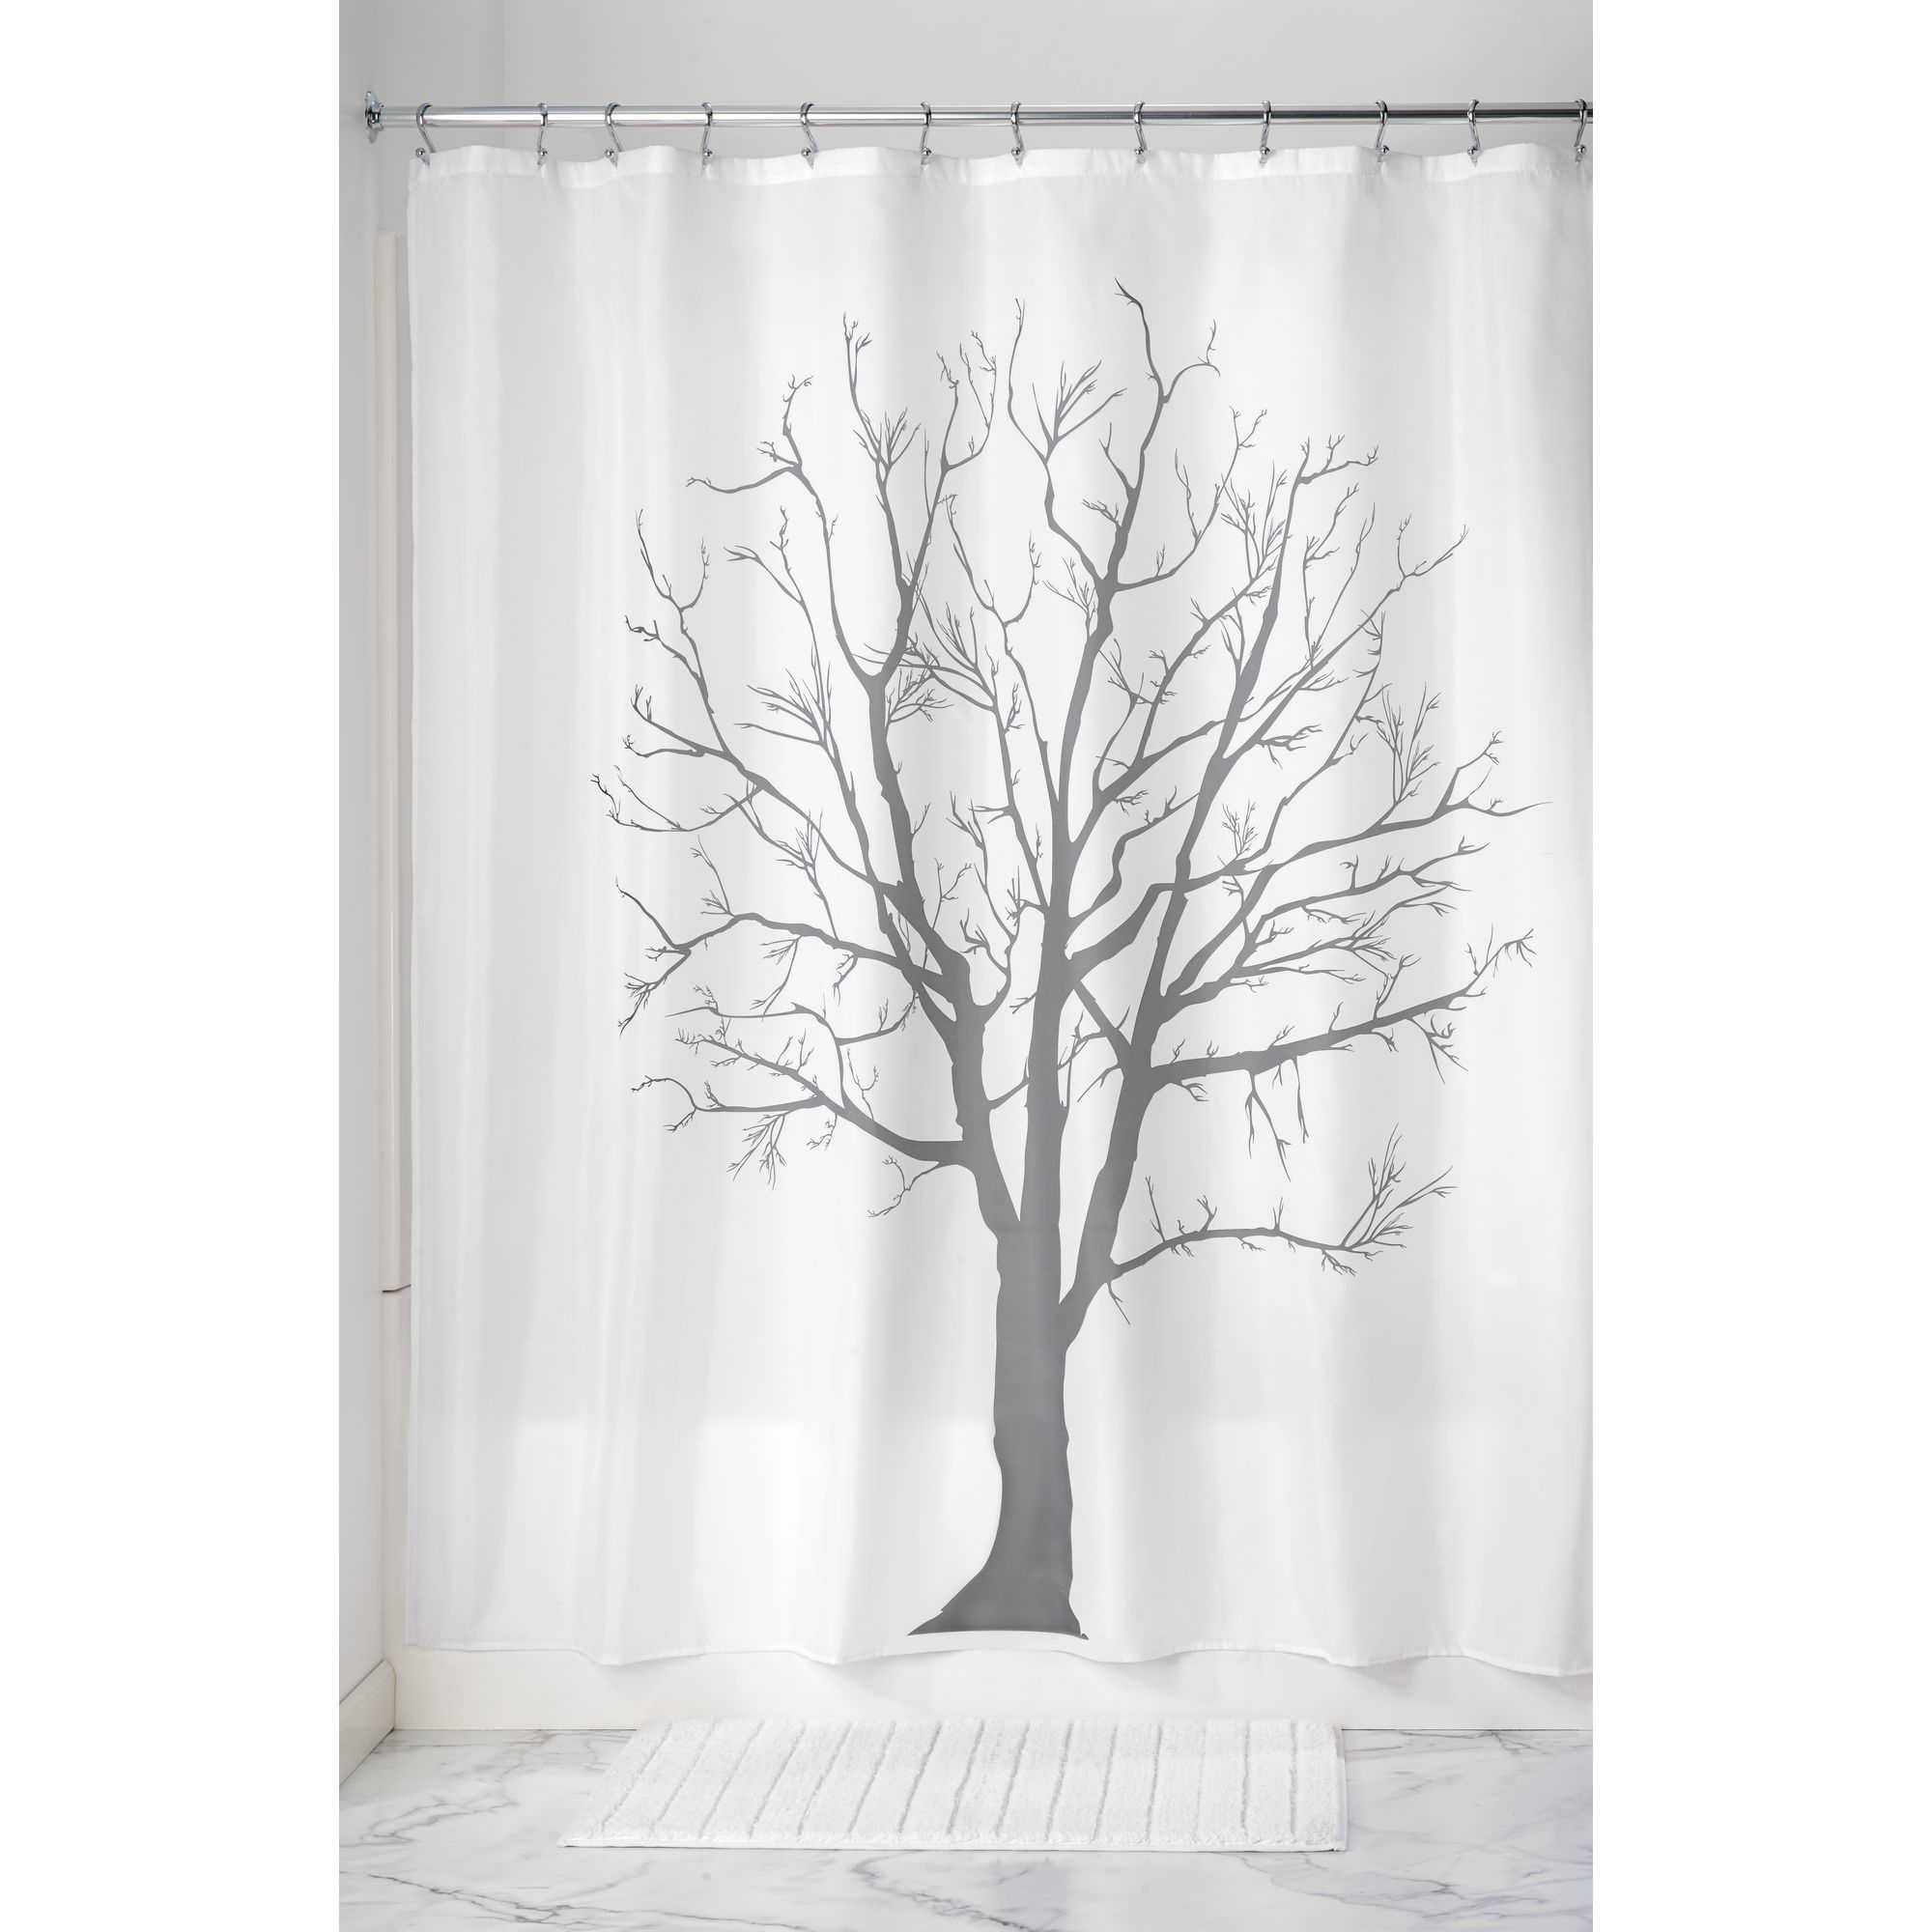 Idesign Tree Shower Curtain In Charcoal Tree Shower Curtains